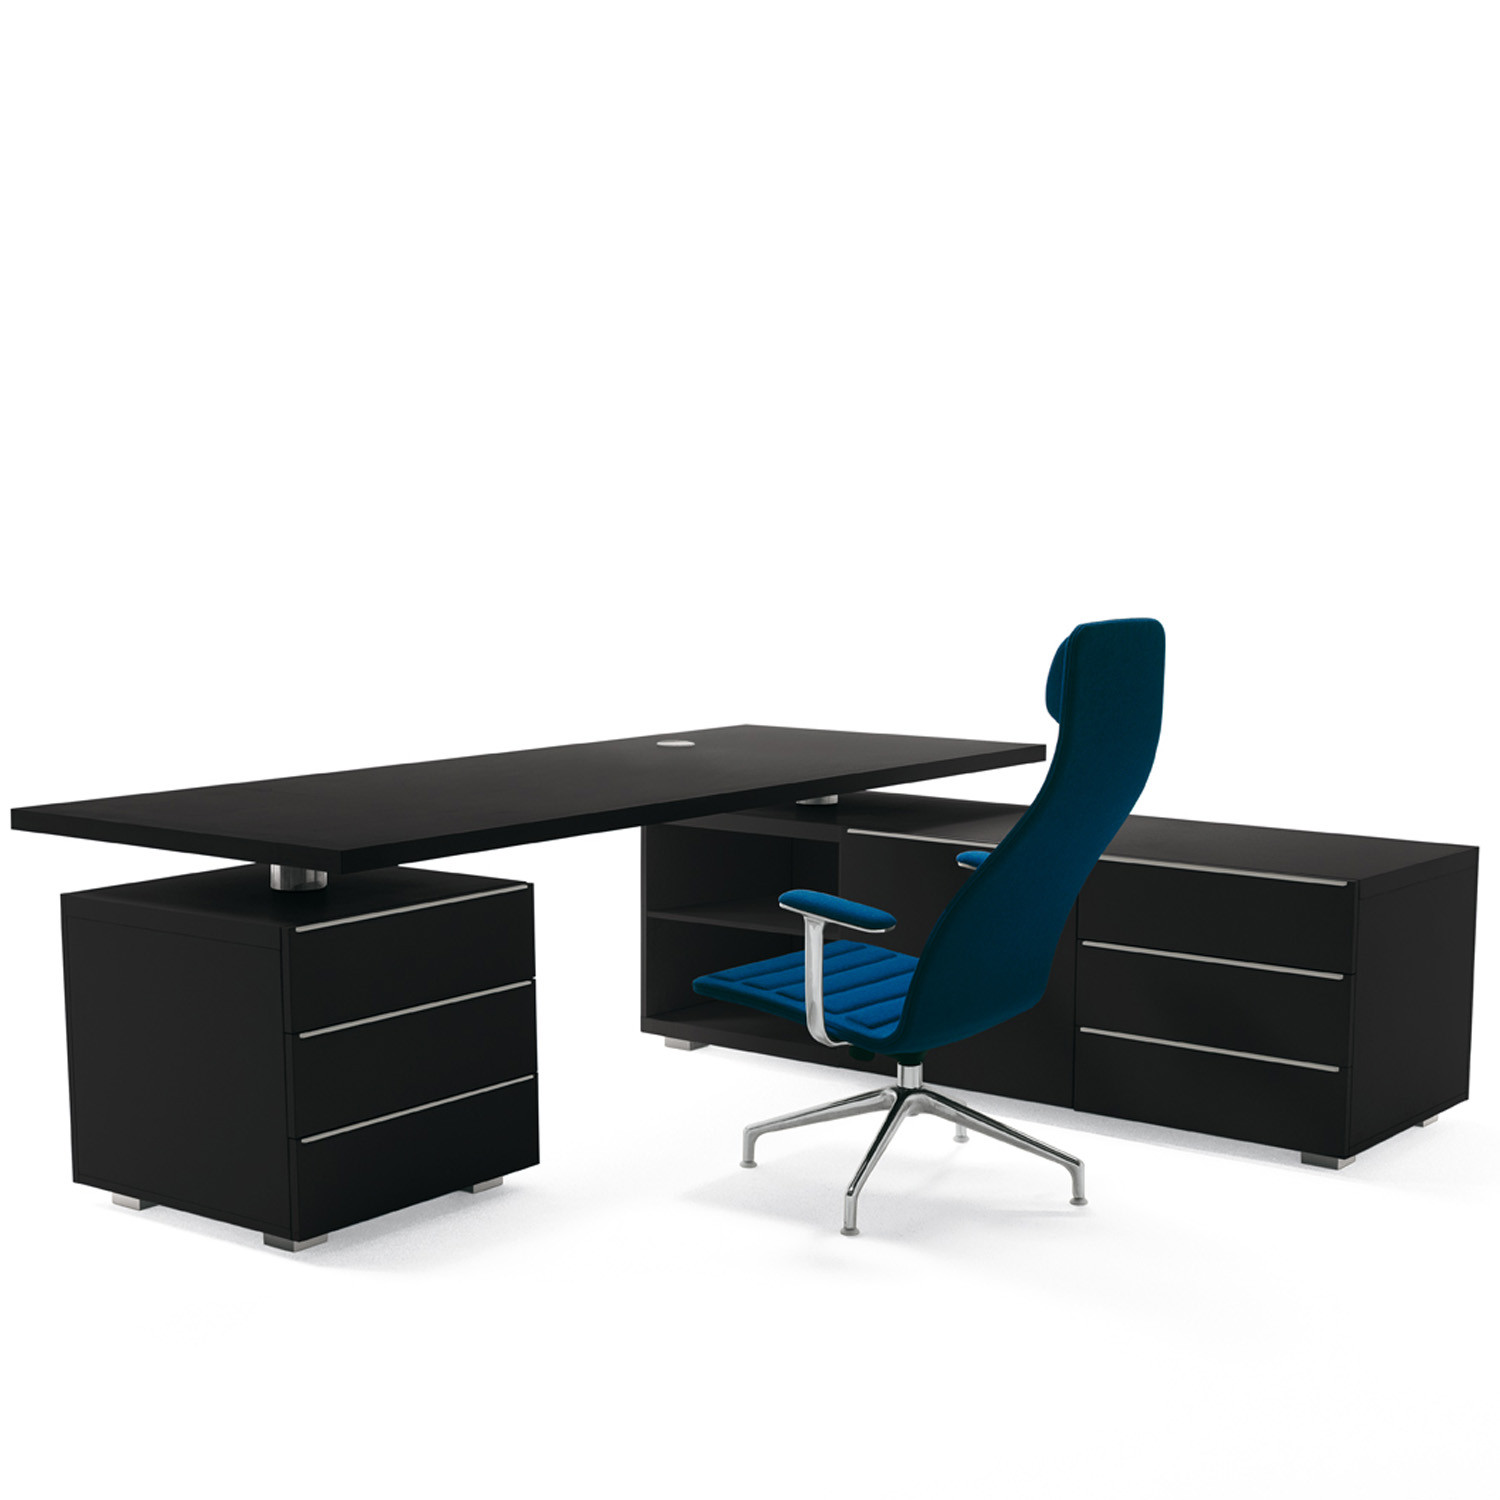 Senior executive desk management desk apres furniture - New contemporary home office furniture style ...